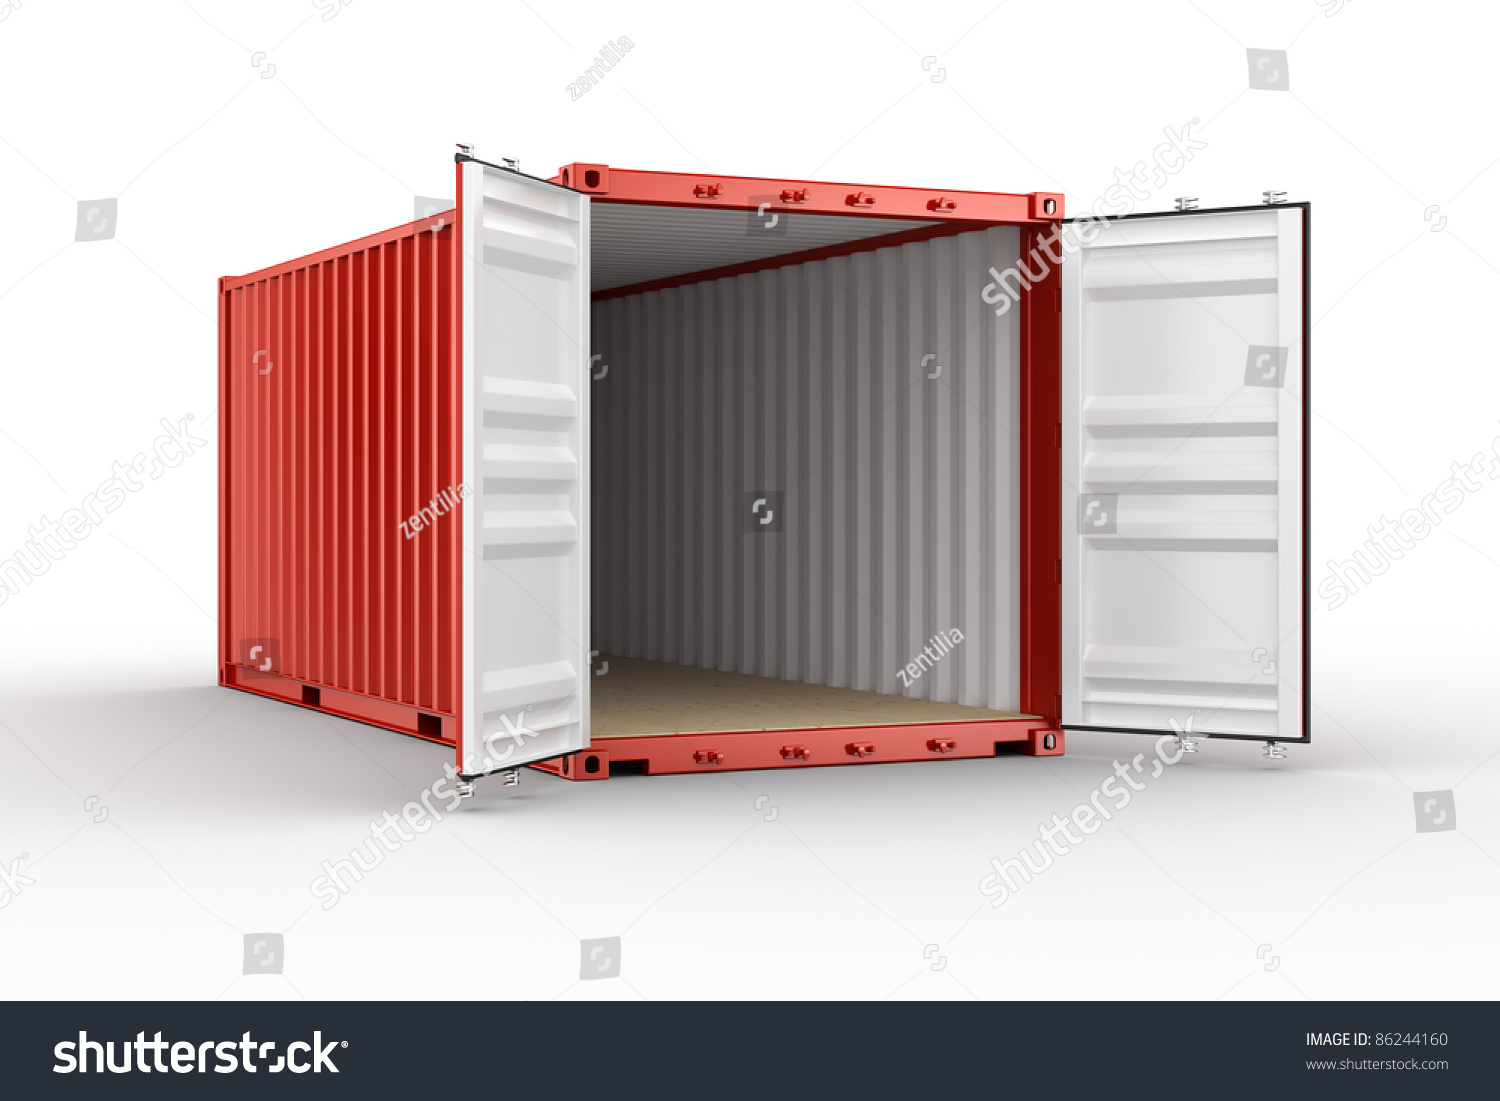 How to open shipping 71